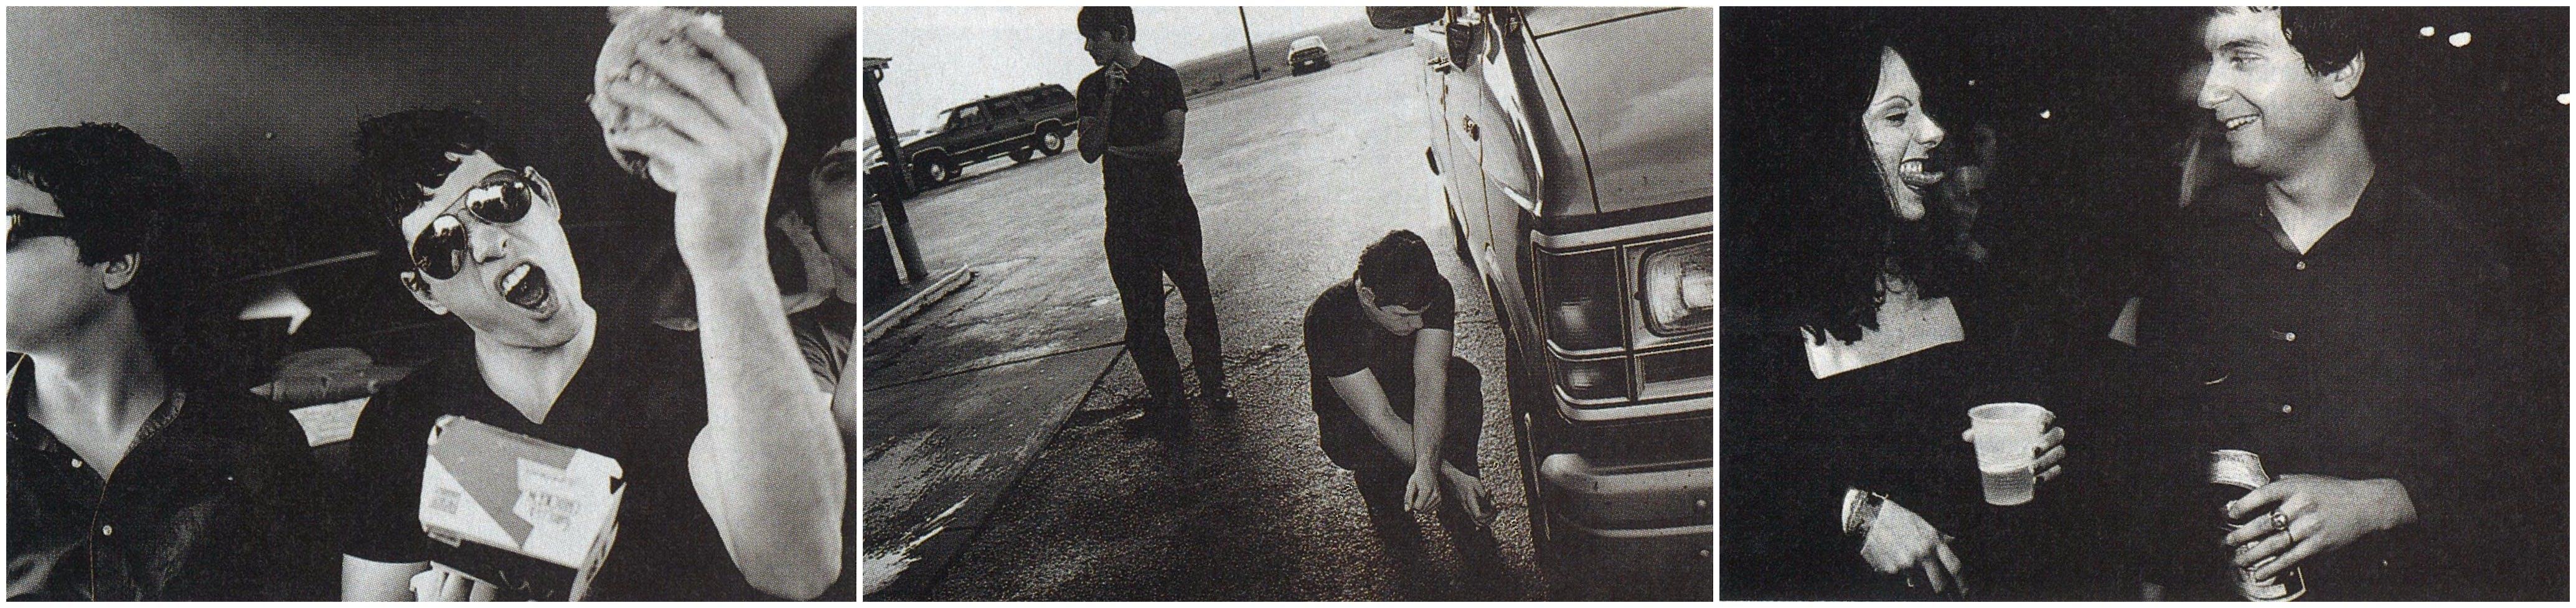 Jason exults over a typical meal on the road: a burger from McDonald's. Conrad lingers in the background at a Stuckey's as Jason checks out yet another problem with the van. Finished for the night, Neil relaxes with a beer and enjoys the attention of an admiring female fan.